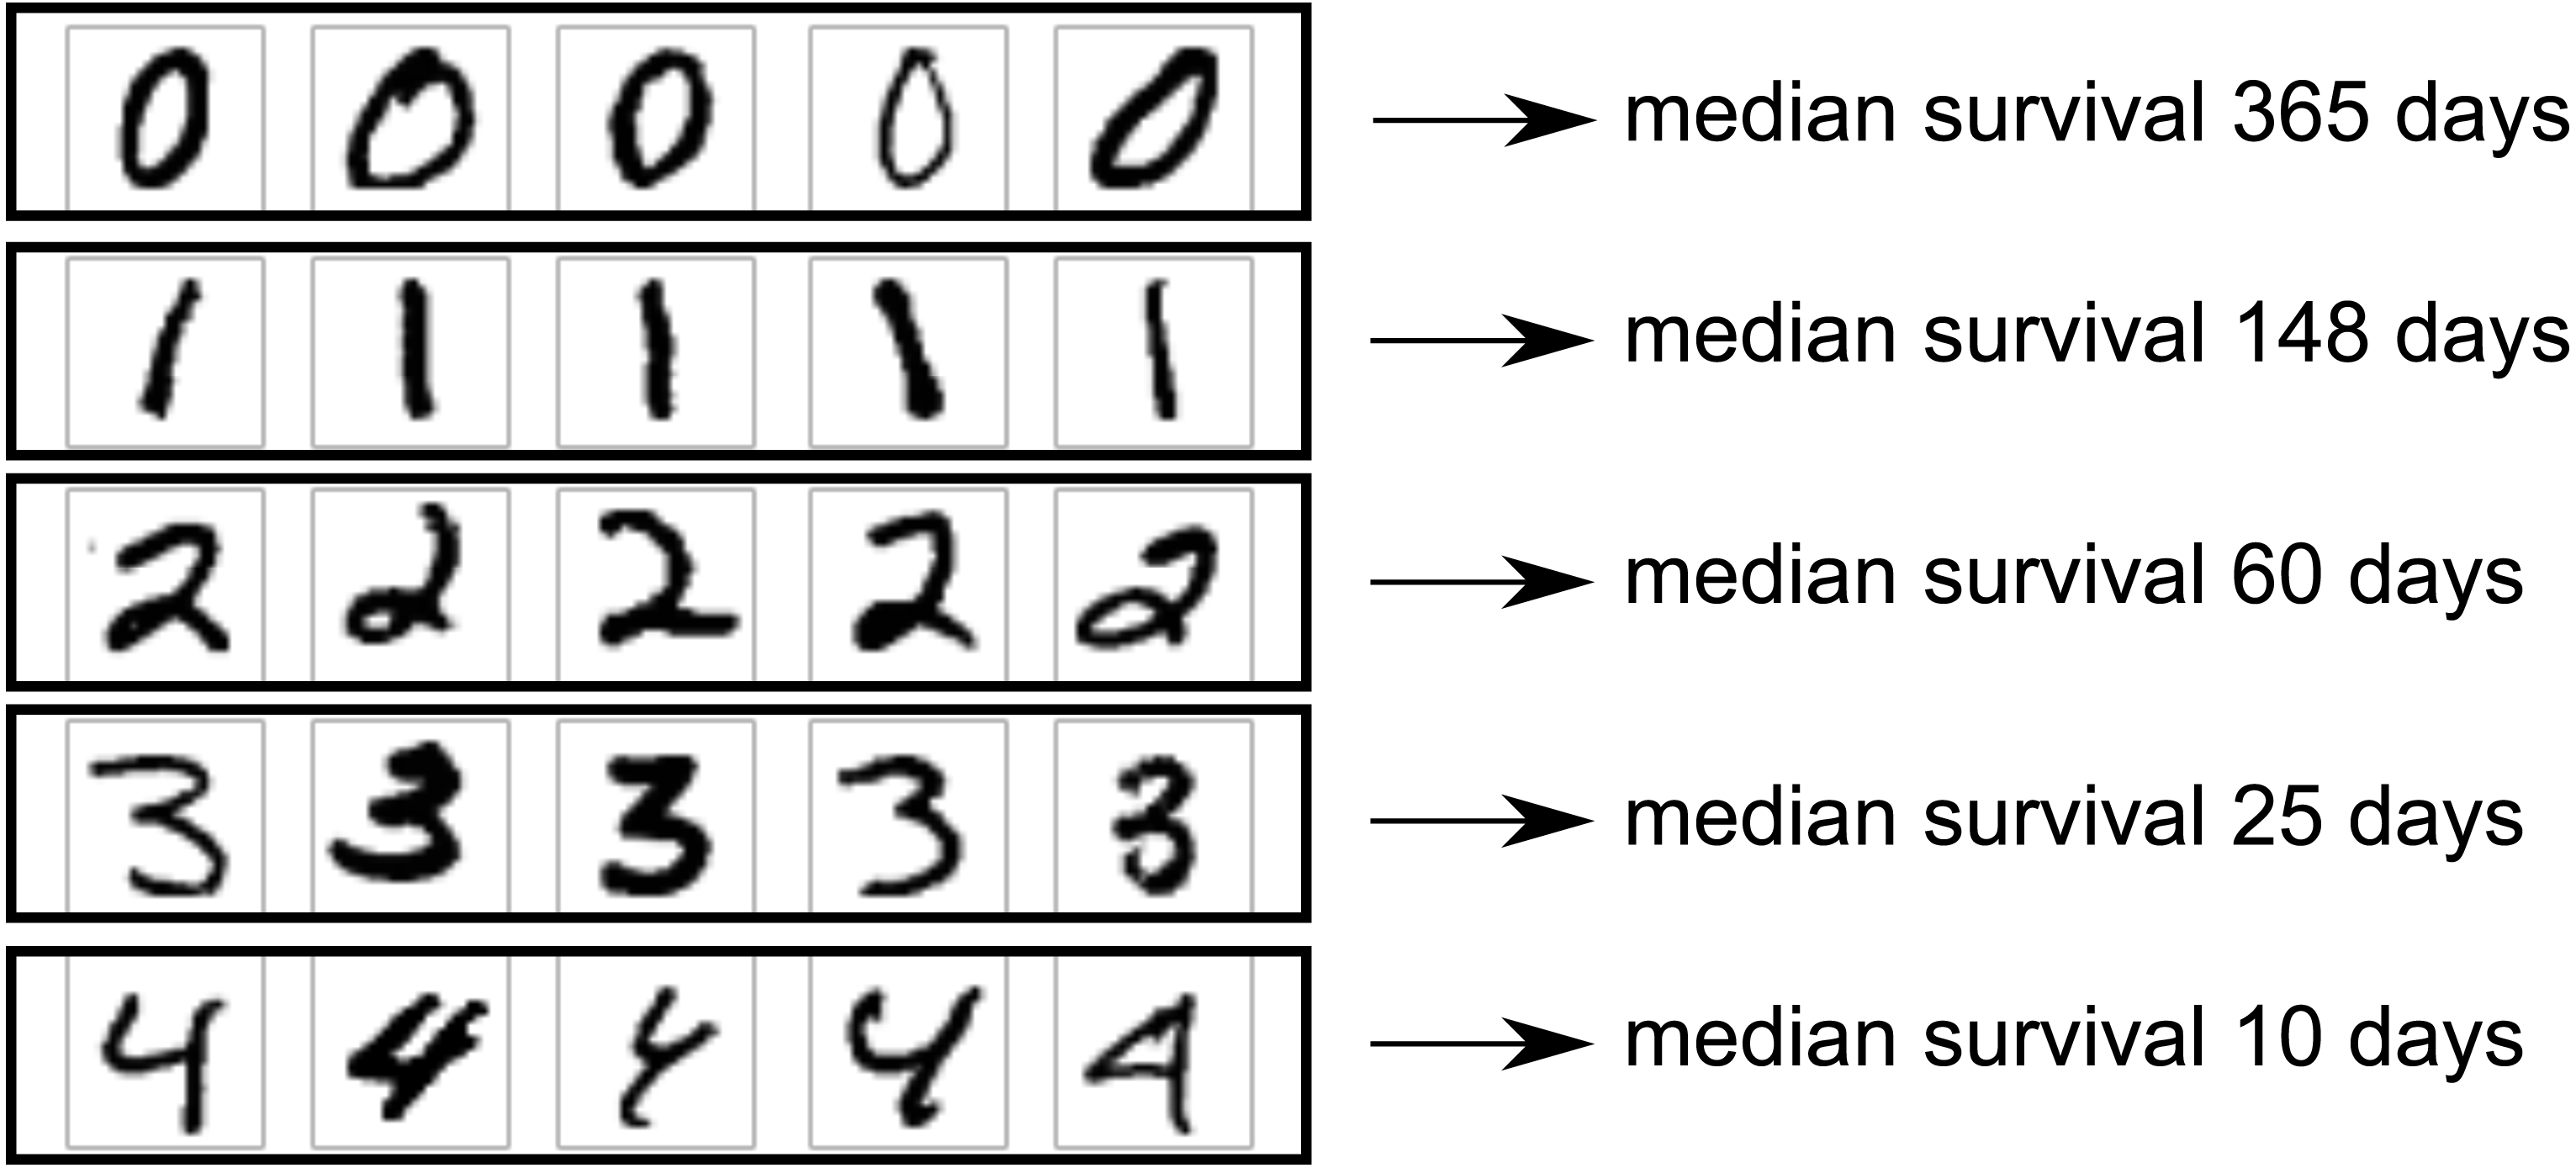 A scalable discrete-time survival model for neural networks [PeerJ]